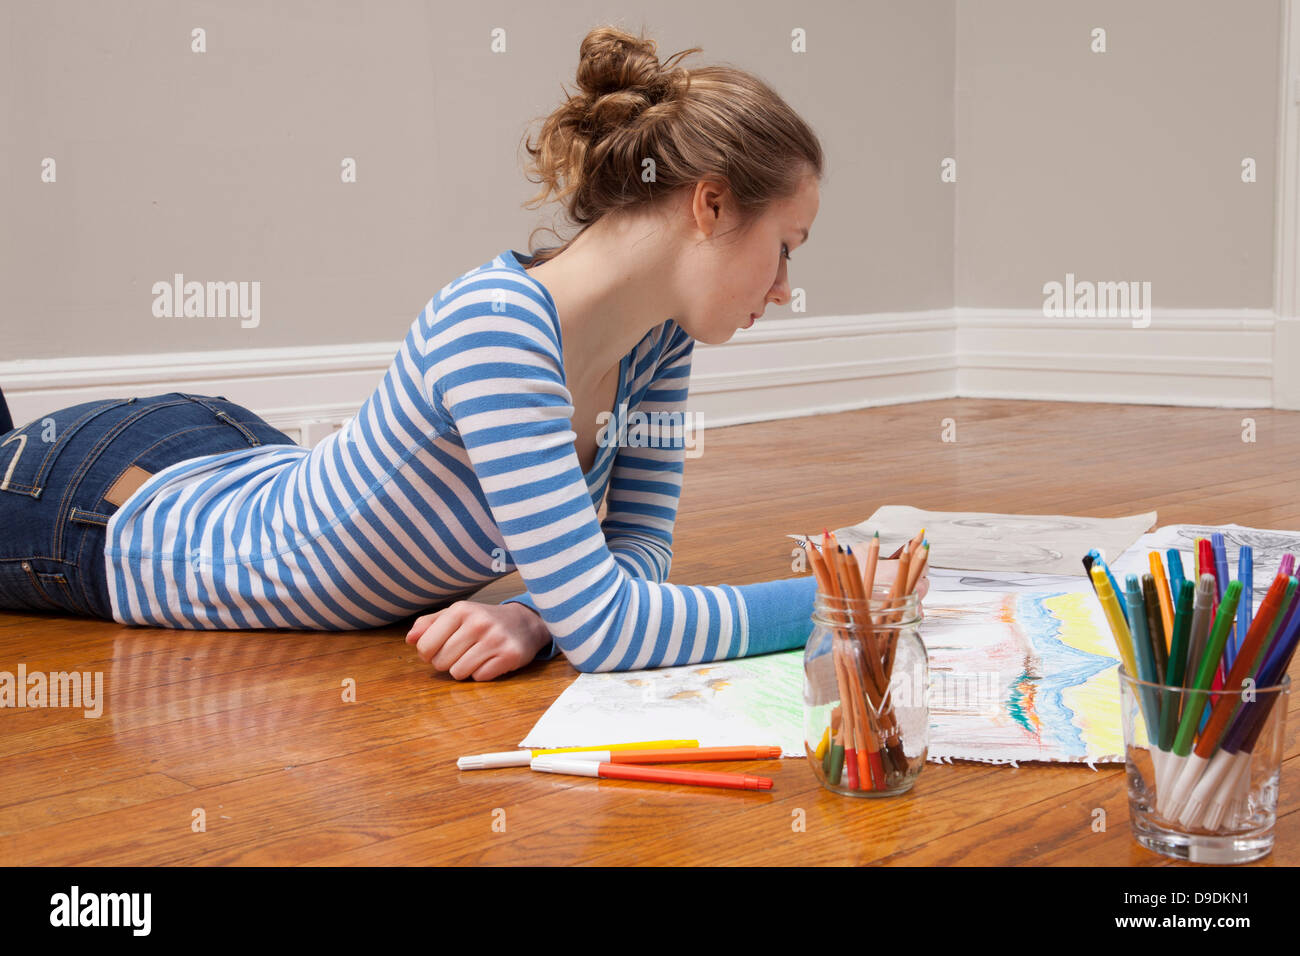 Girl lying on floor dimensions photo Photo Stock